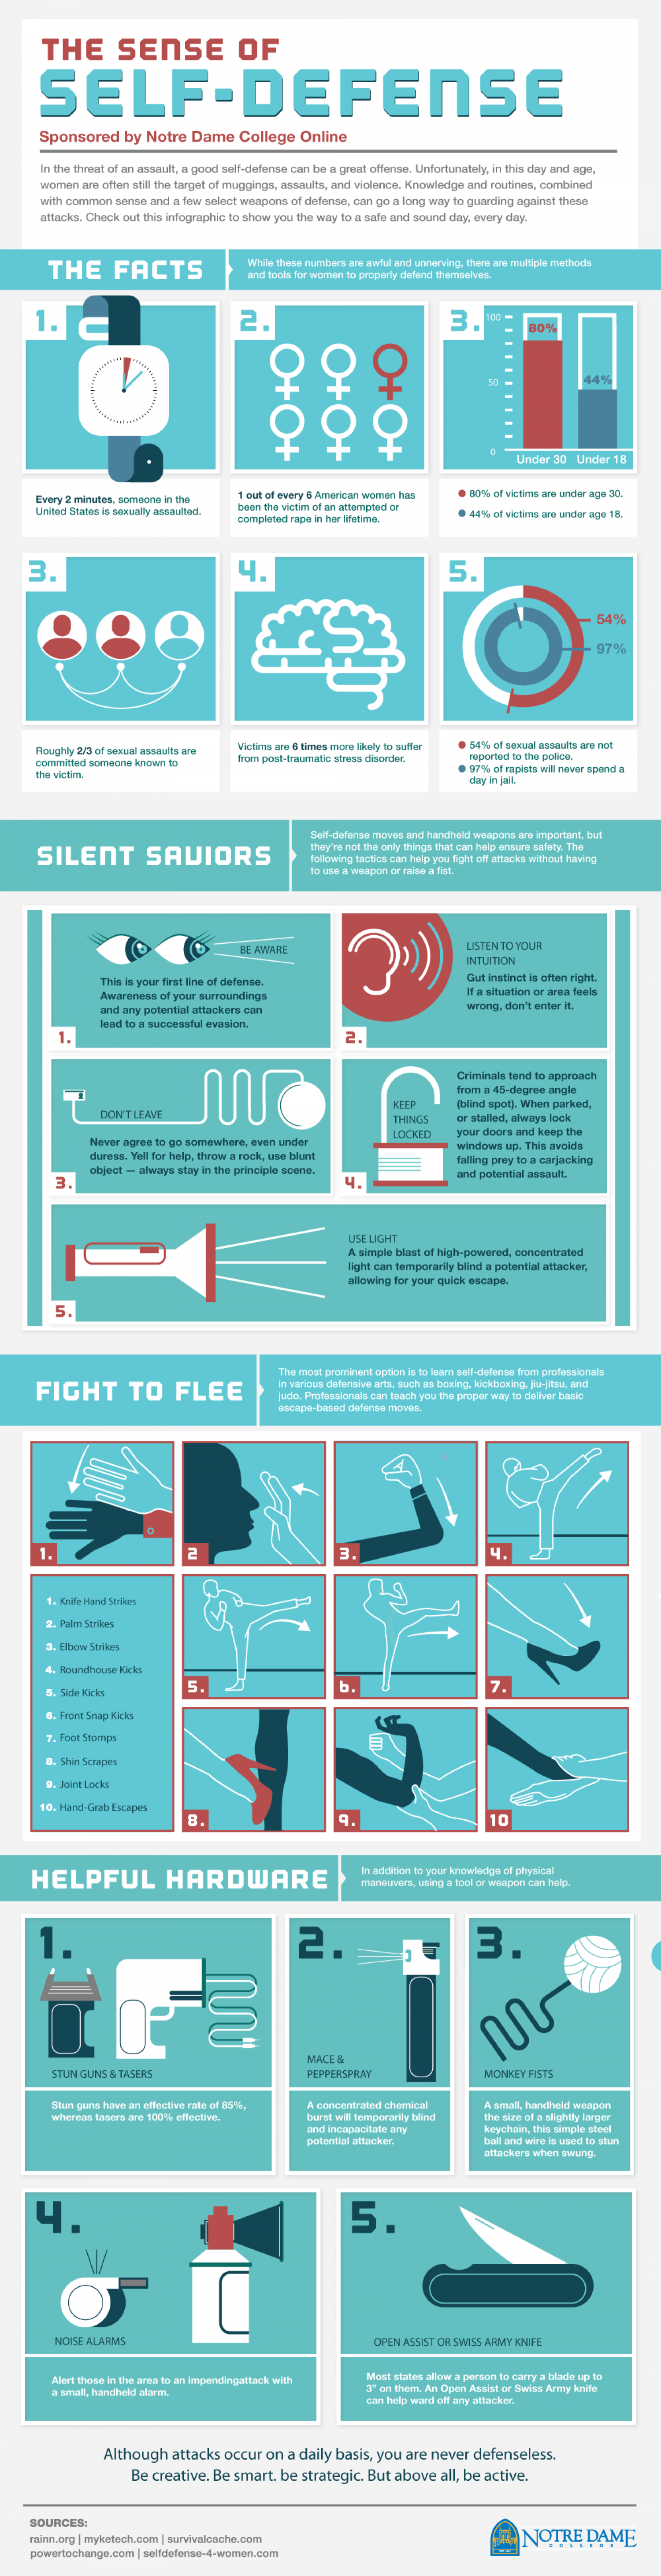 The Sense of Self-Defense Infographic